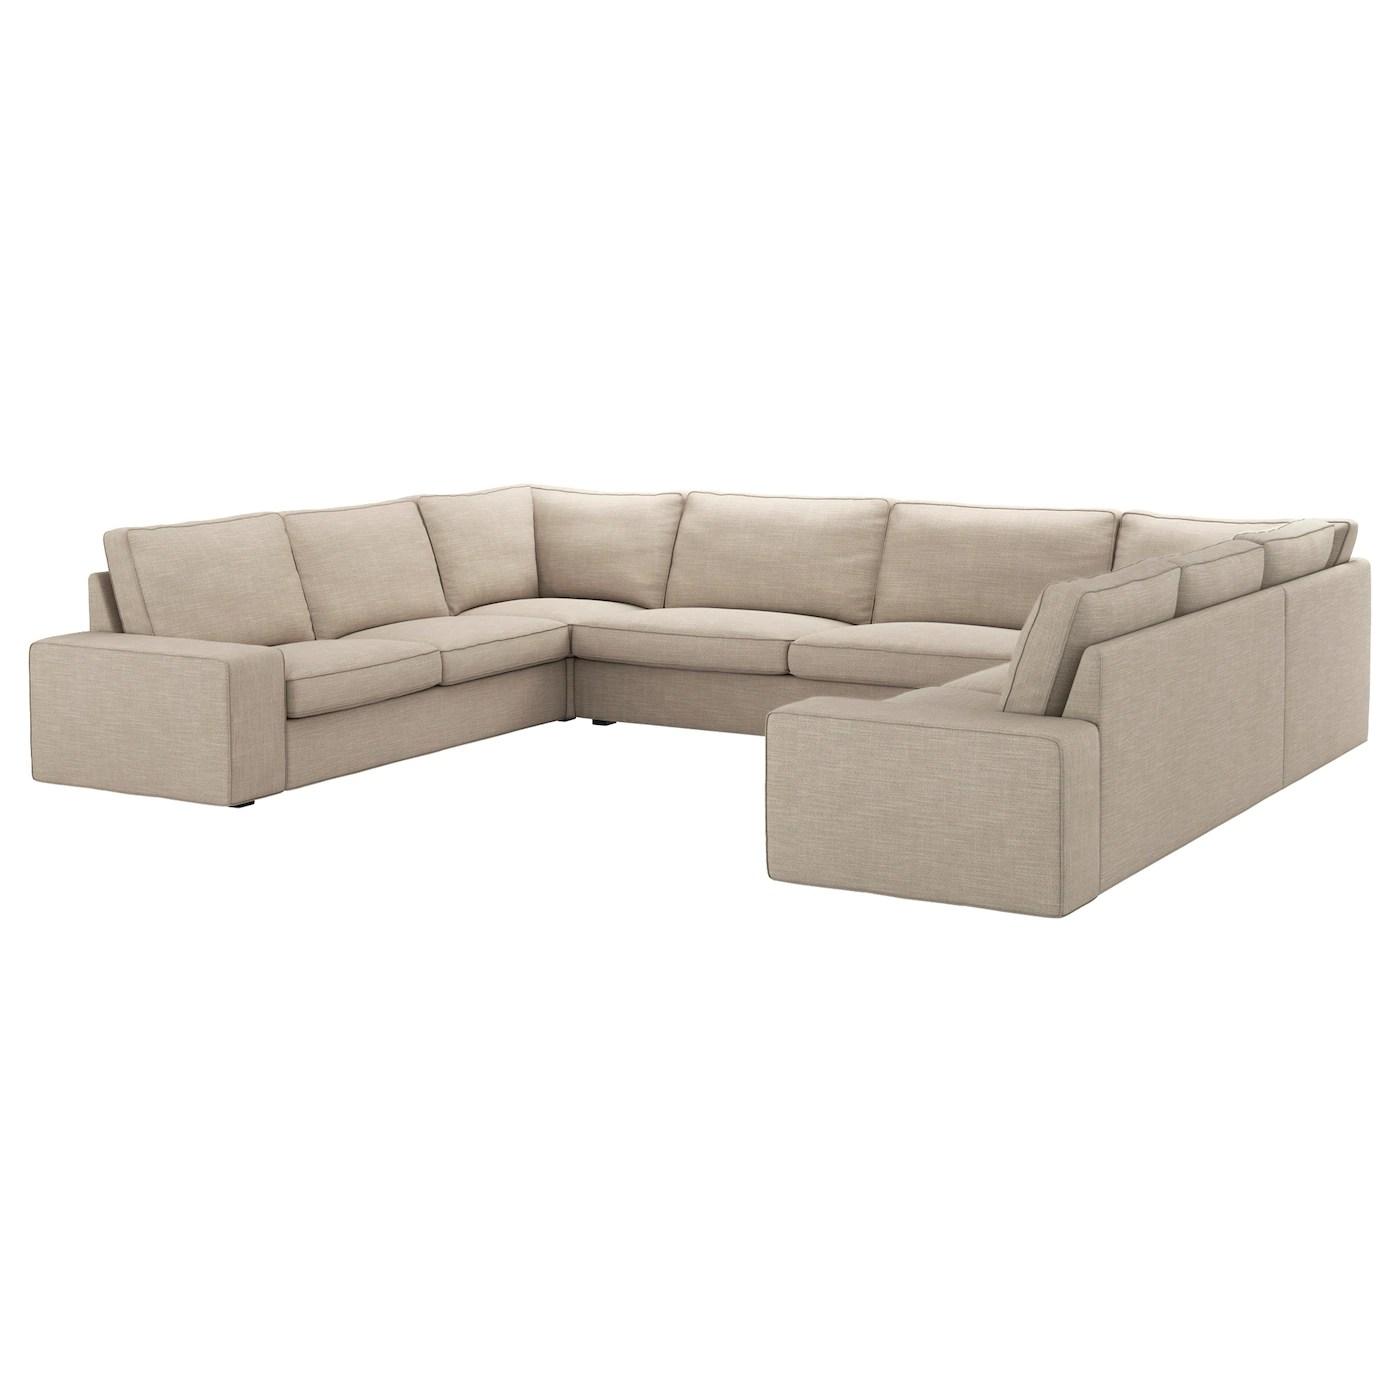 U Sofa Kivik U Shaped Sofa 7 Seat Hillared Beige